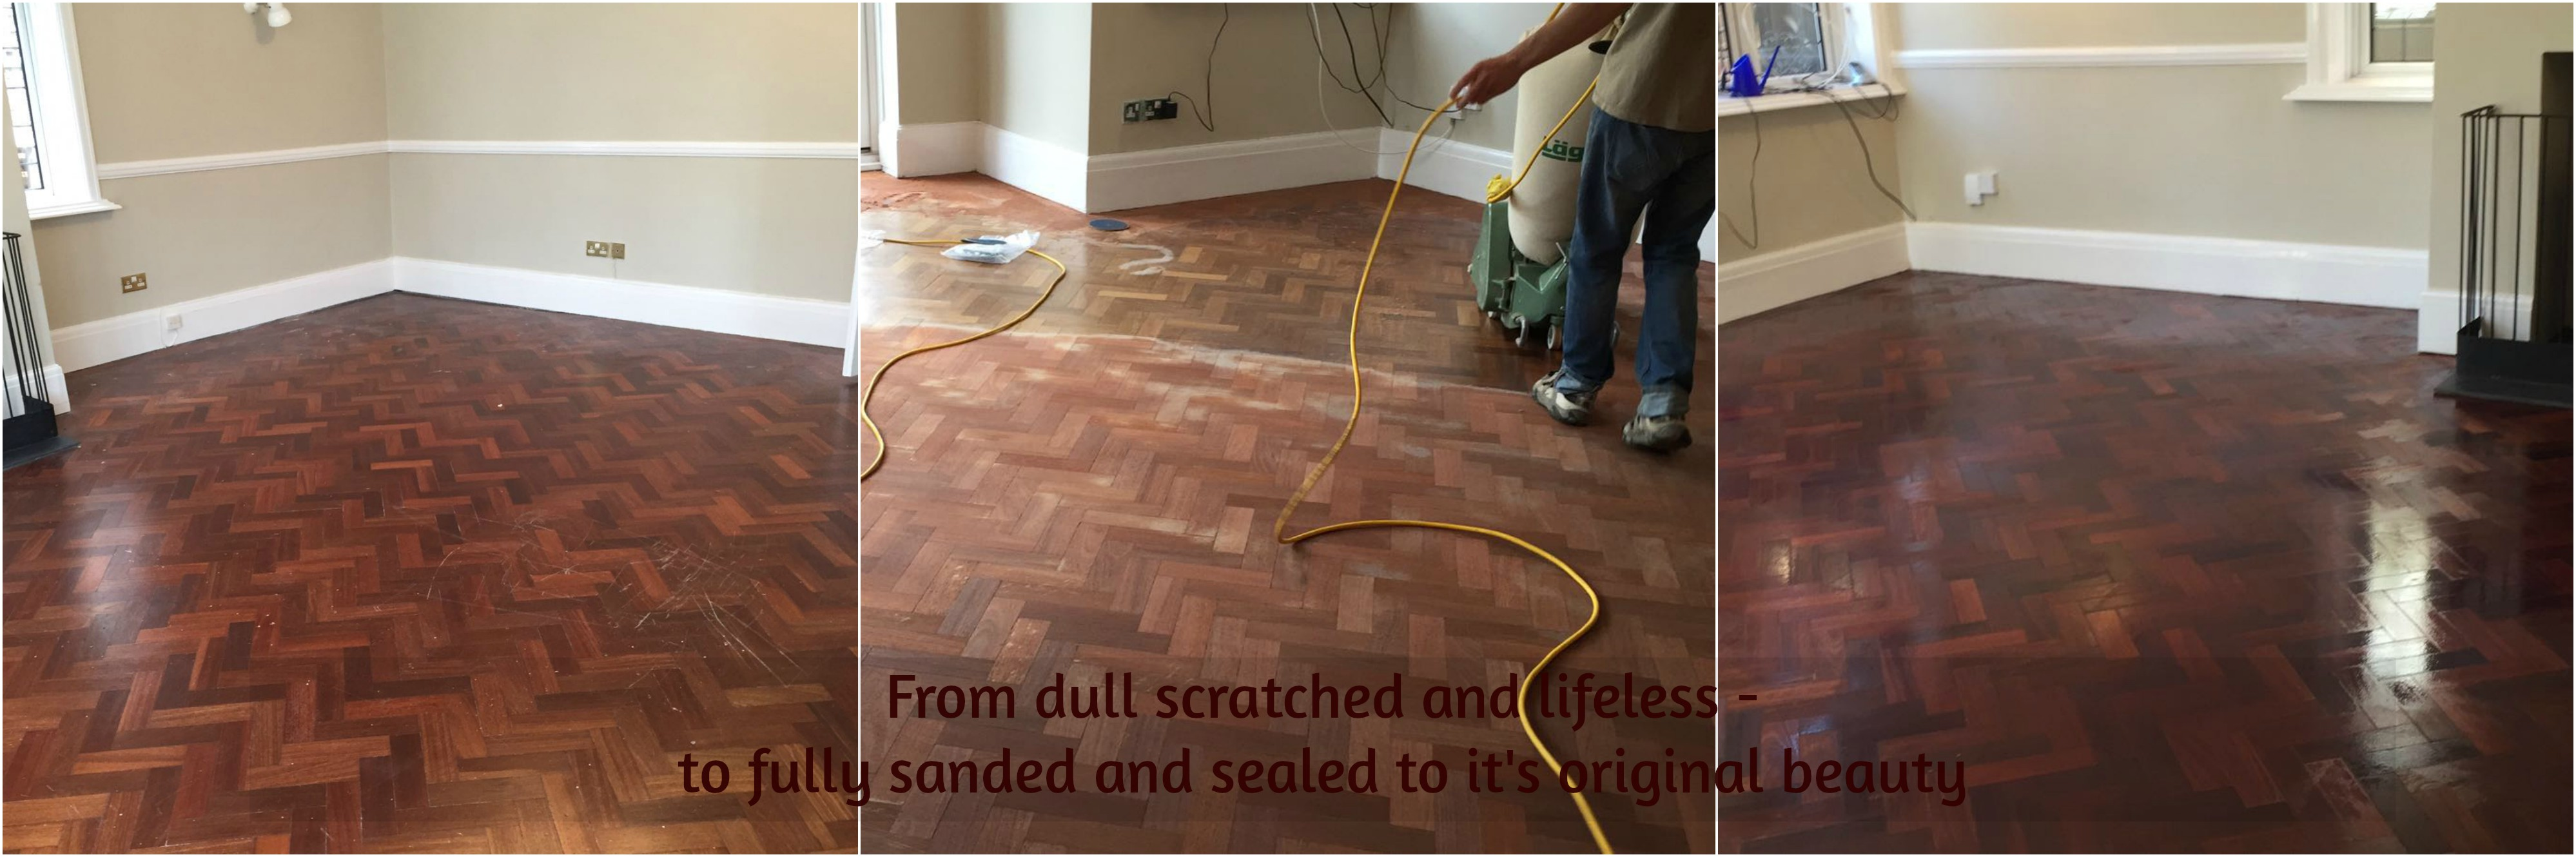 parquet products ireland wood tumbled thumb oak s canadia floor index smoked flooring oiled category specialist white timber block solid